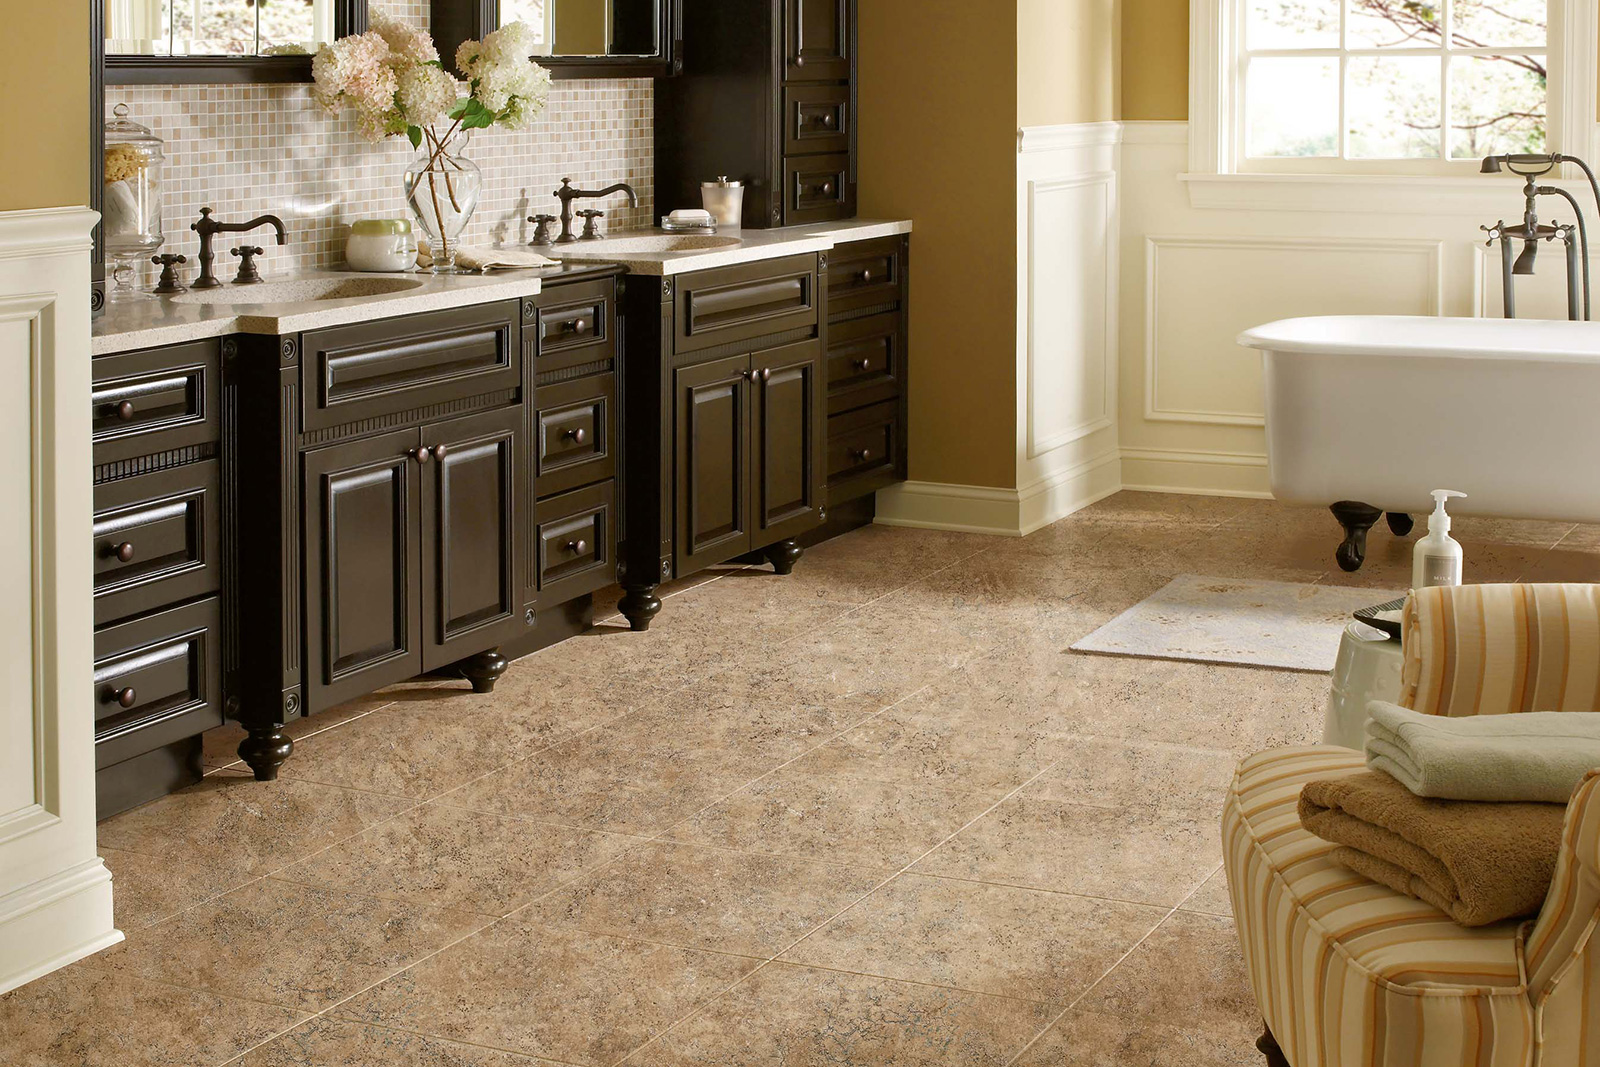 Non Slip Vinyl Flooring Kitchen Bathroom Flooring Bathroom Flooring Options Houselogic Bathrooms